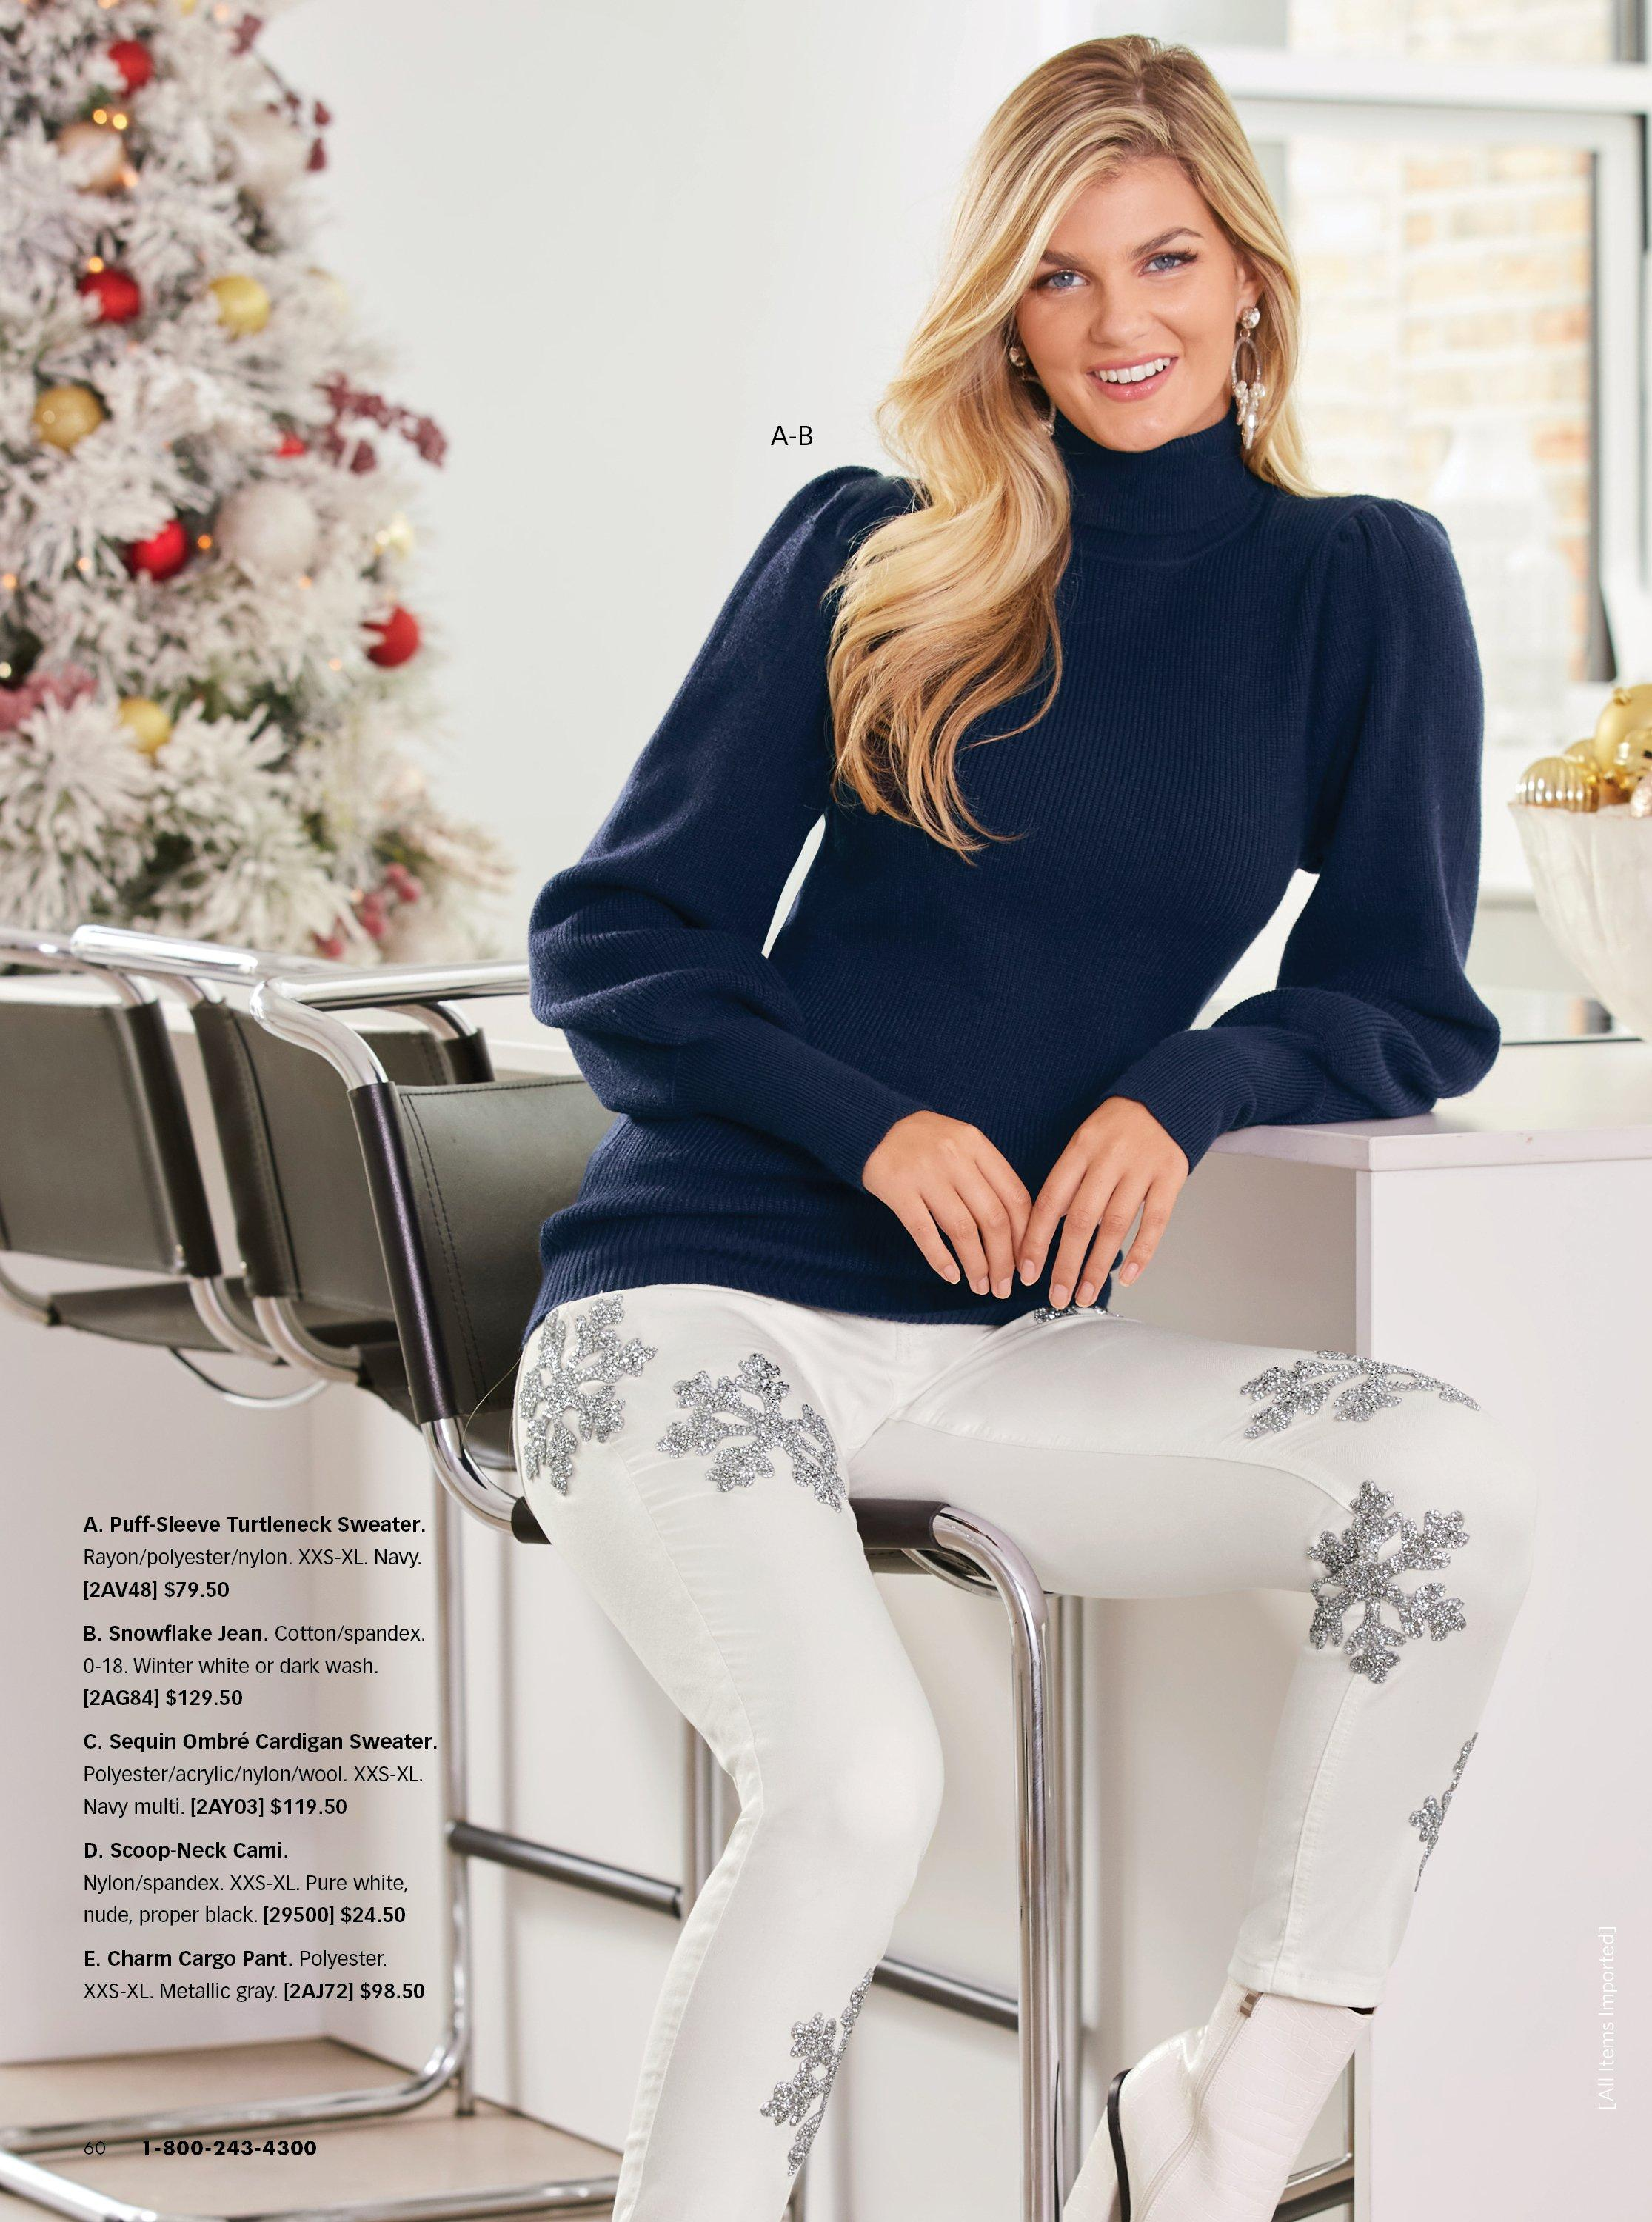 model wearing a navy turtleneck balloon sleeve sweater, white snowflake embellished jeans, and white boots.